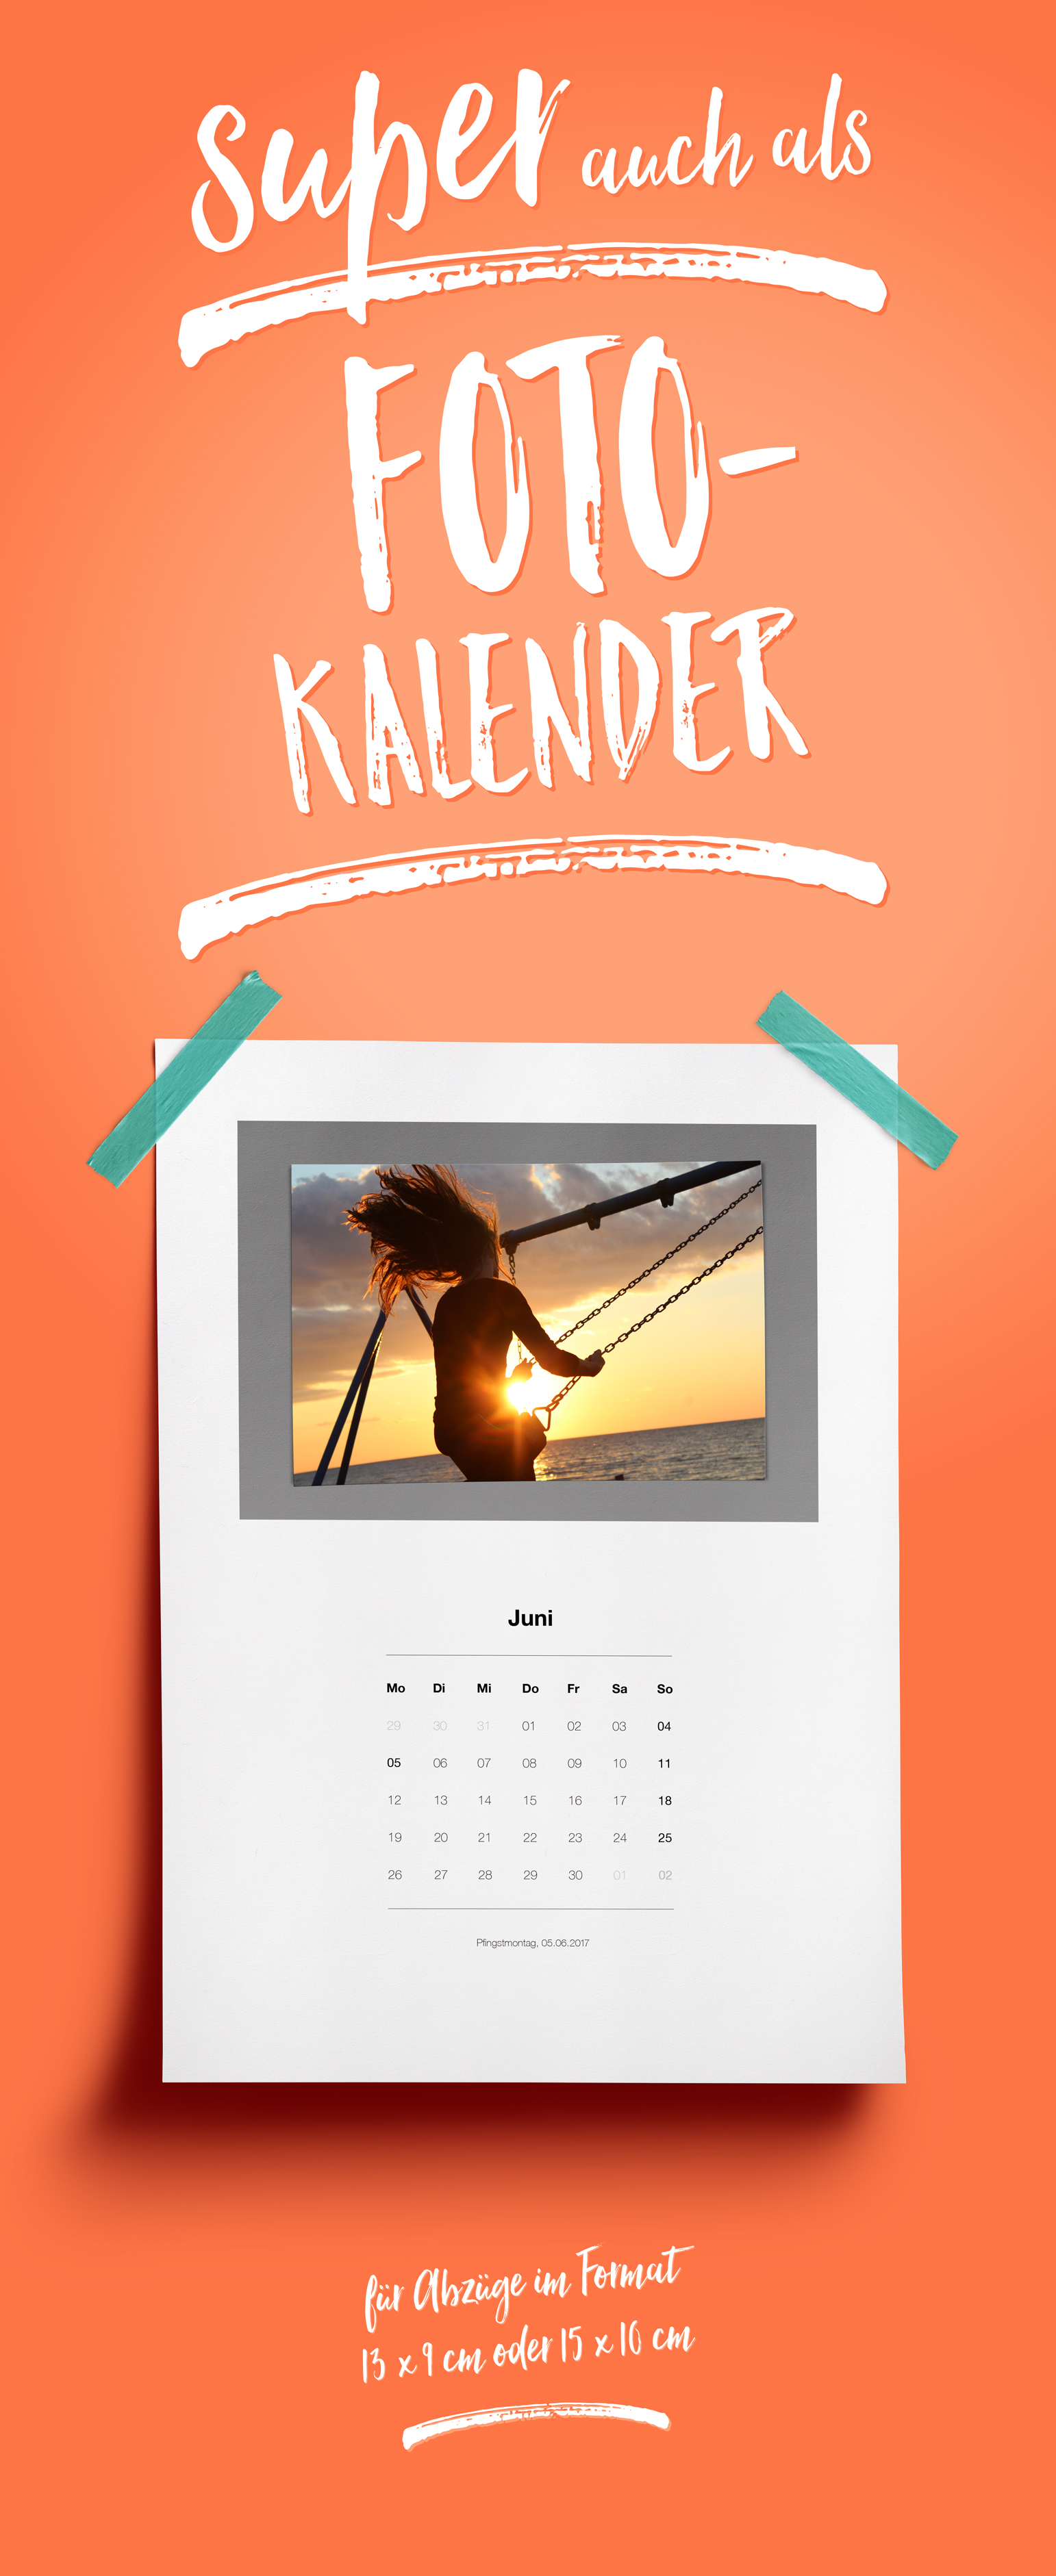 Kalender 2017 Gesa Siebert Kommunikationsdesign Fotokalender Free Download